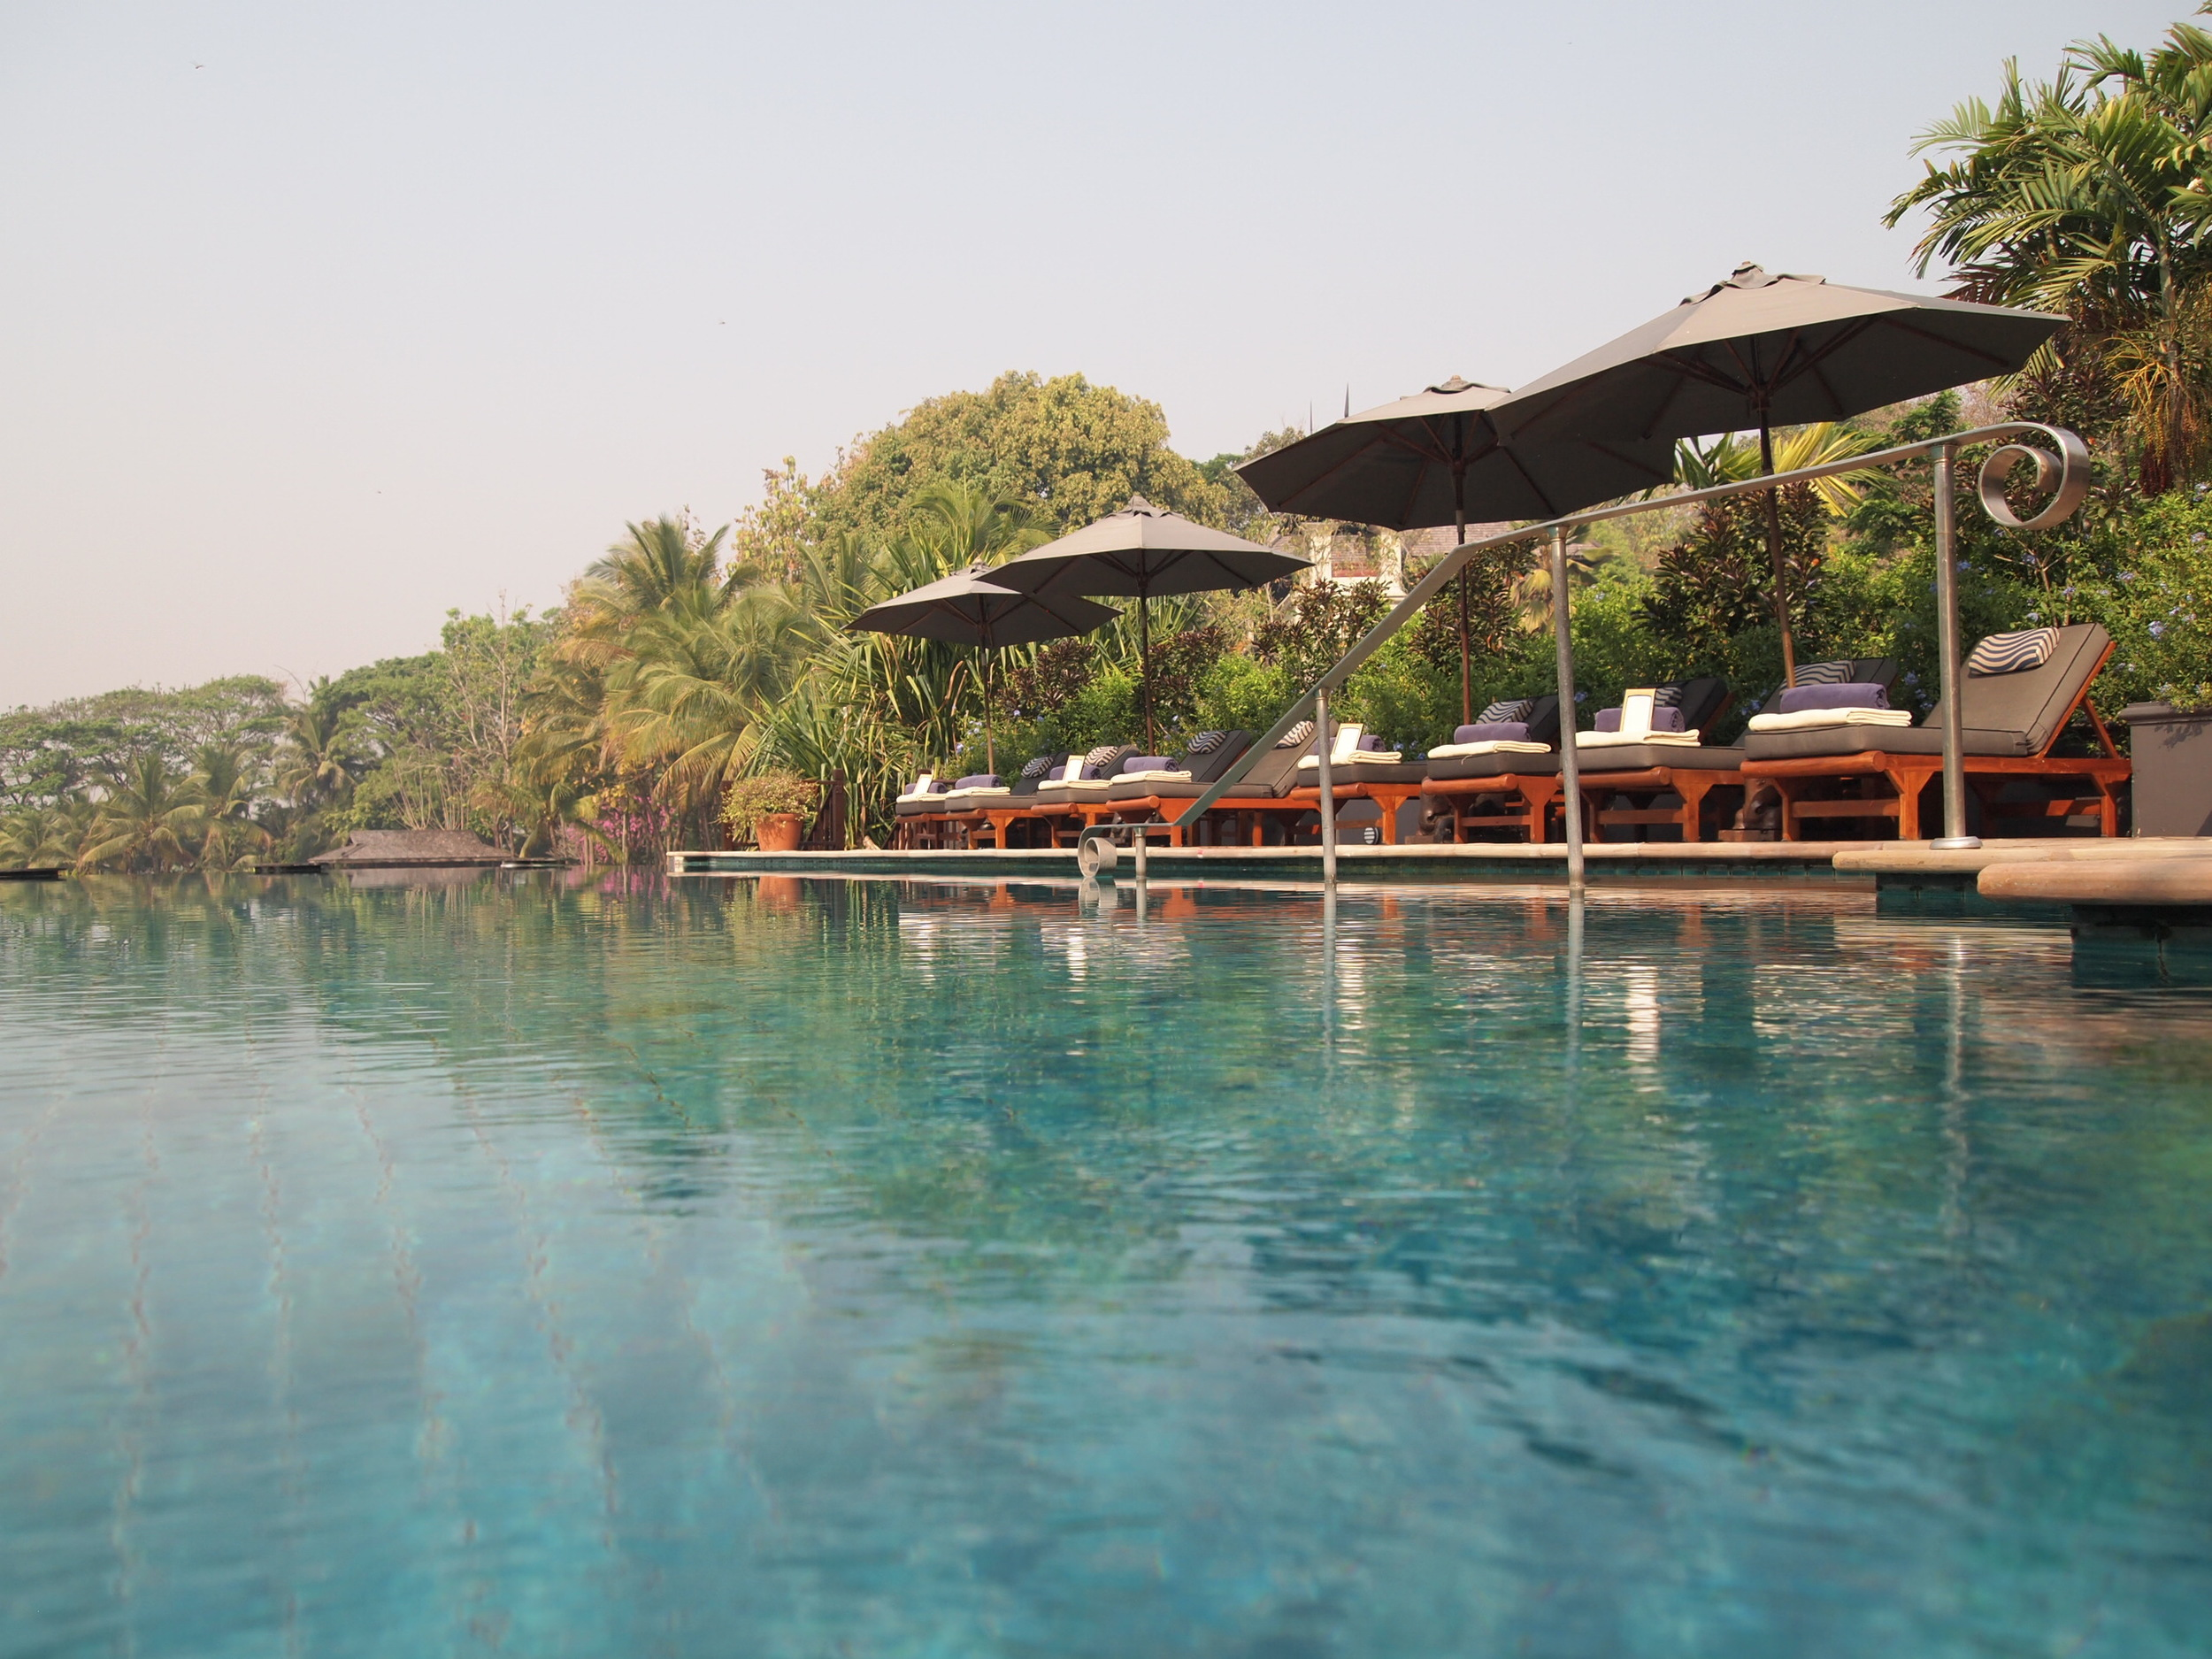 Thailand. The Four Seasons Resort Chiang Mai's main pool.